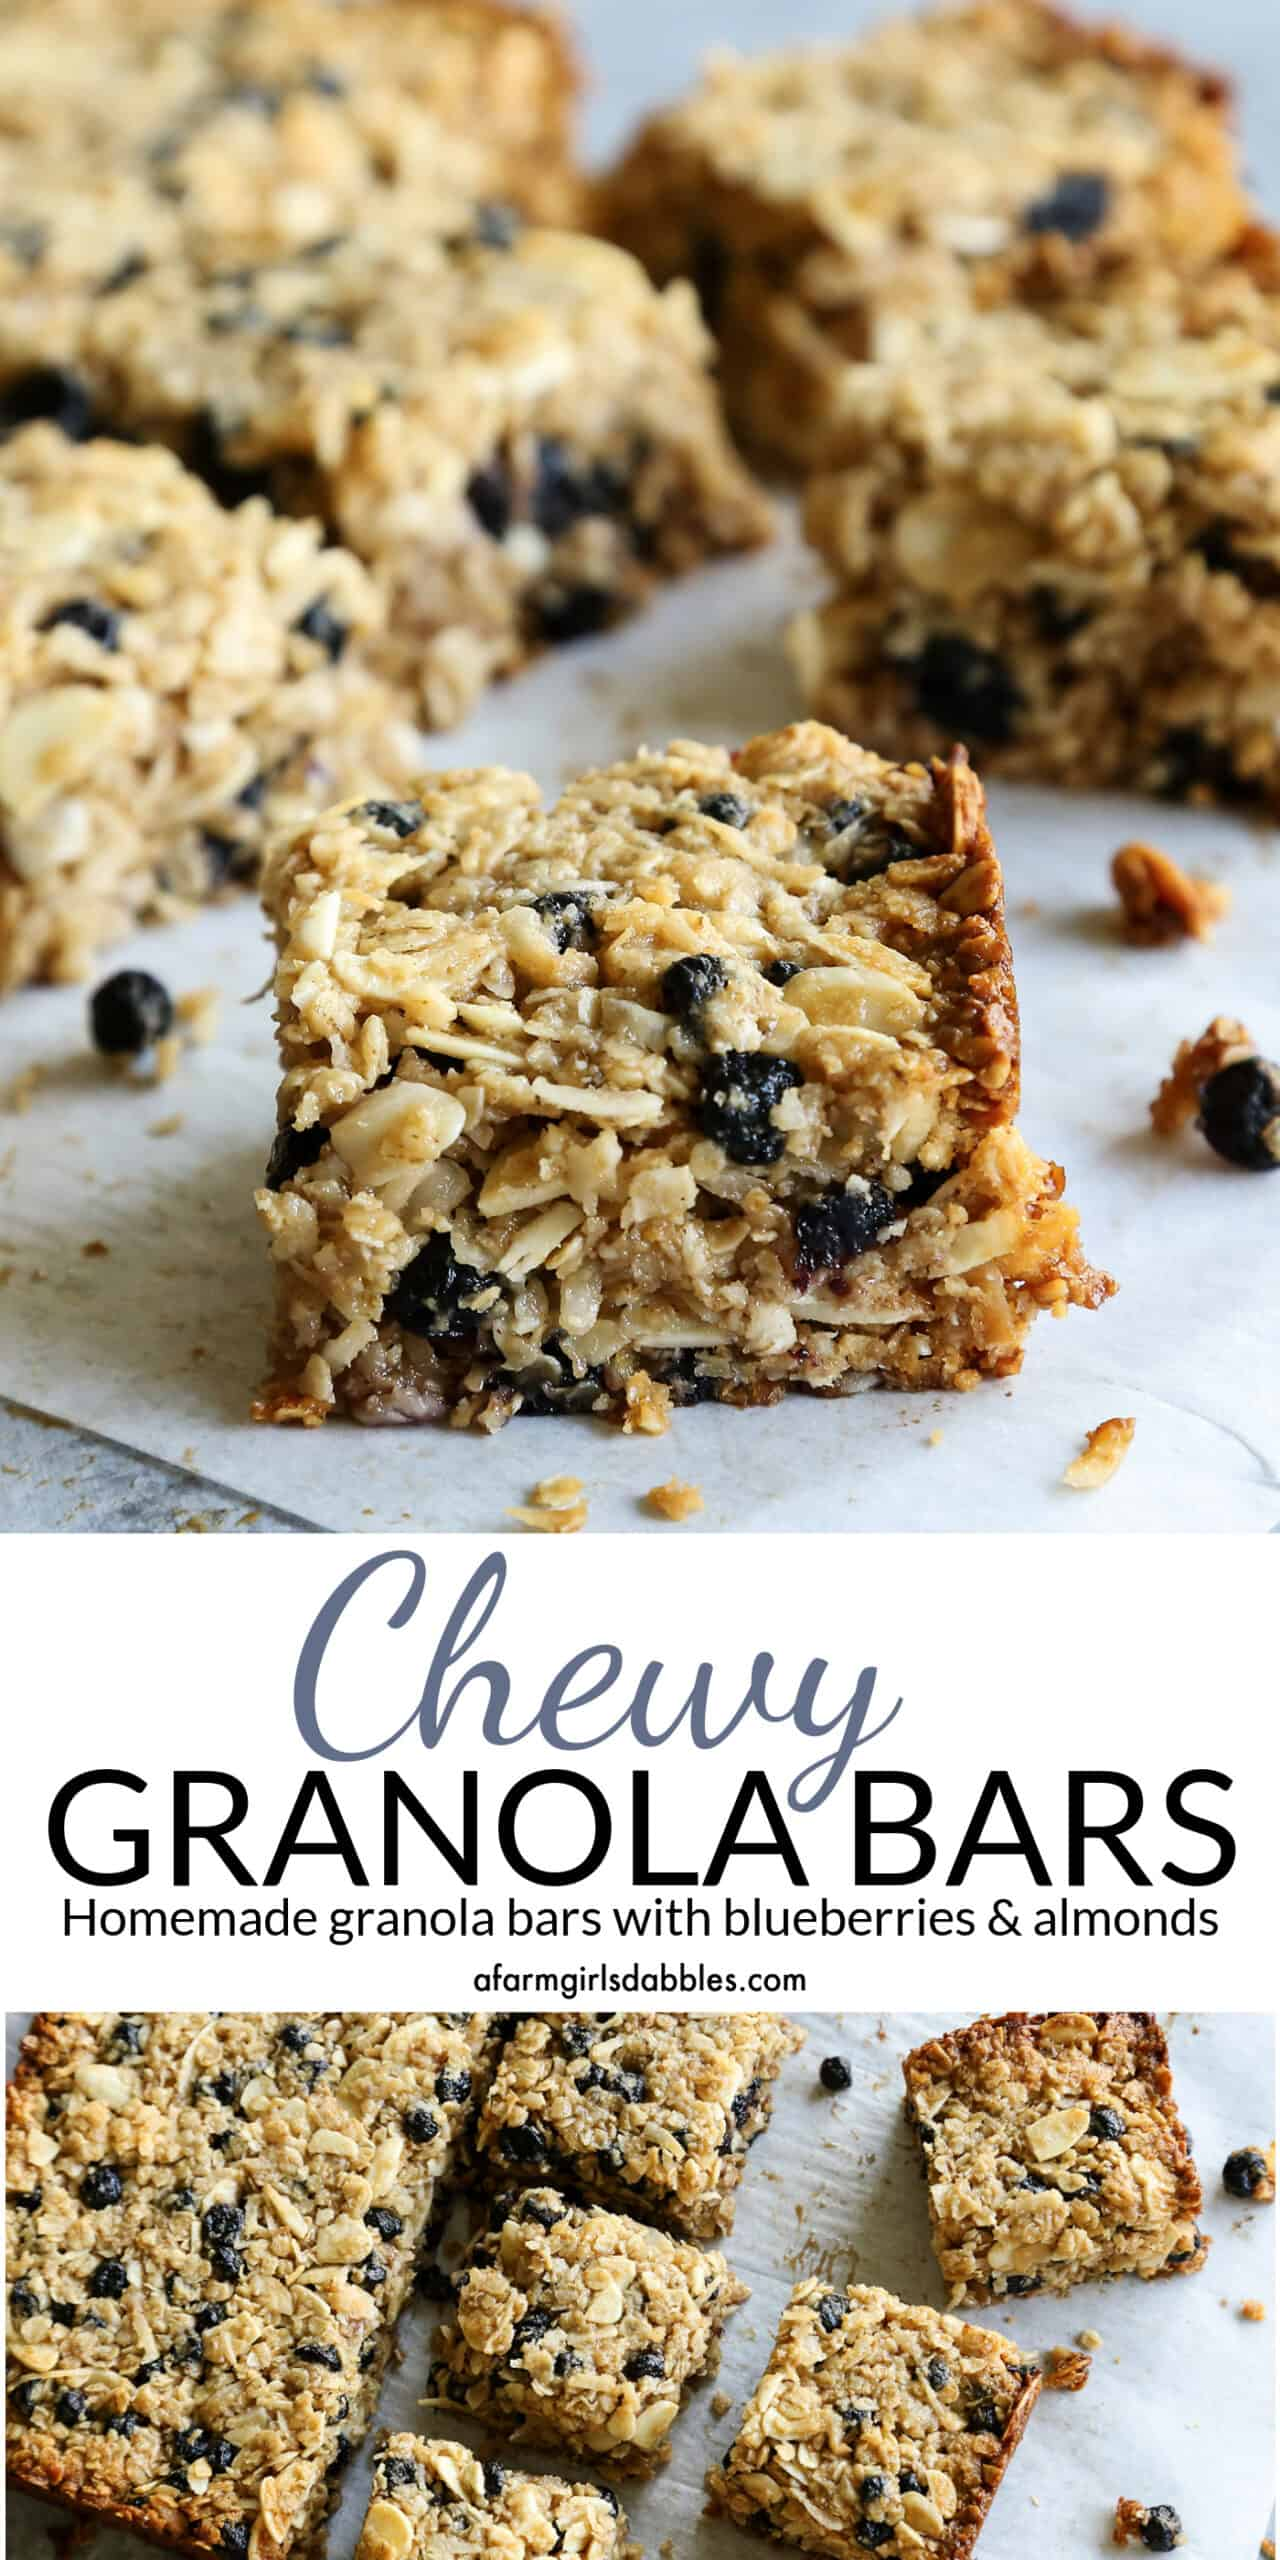 Pinterest image for Chewy Granola Bars